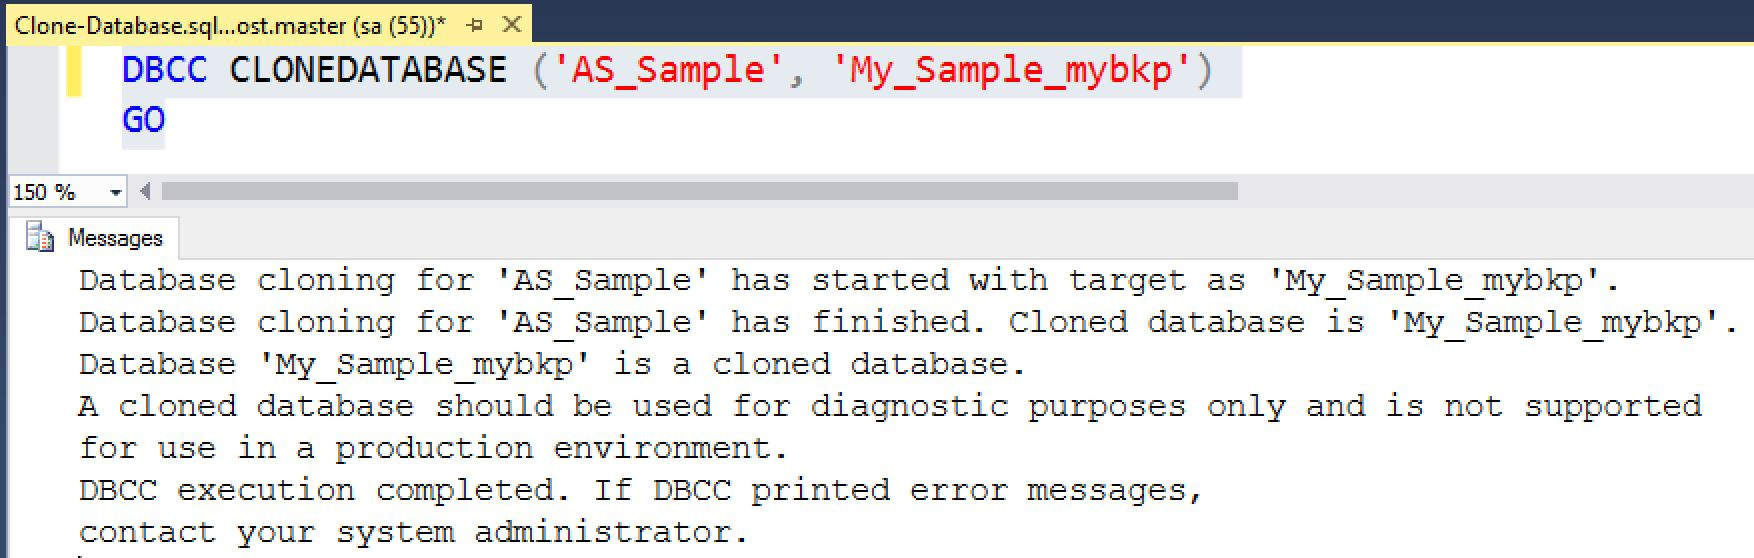 SQL SERVER - CLONEDATABASE: Generate Statistics and Schema Only Copy of the Database sql-db-clone-01